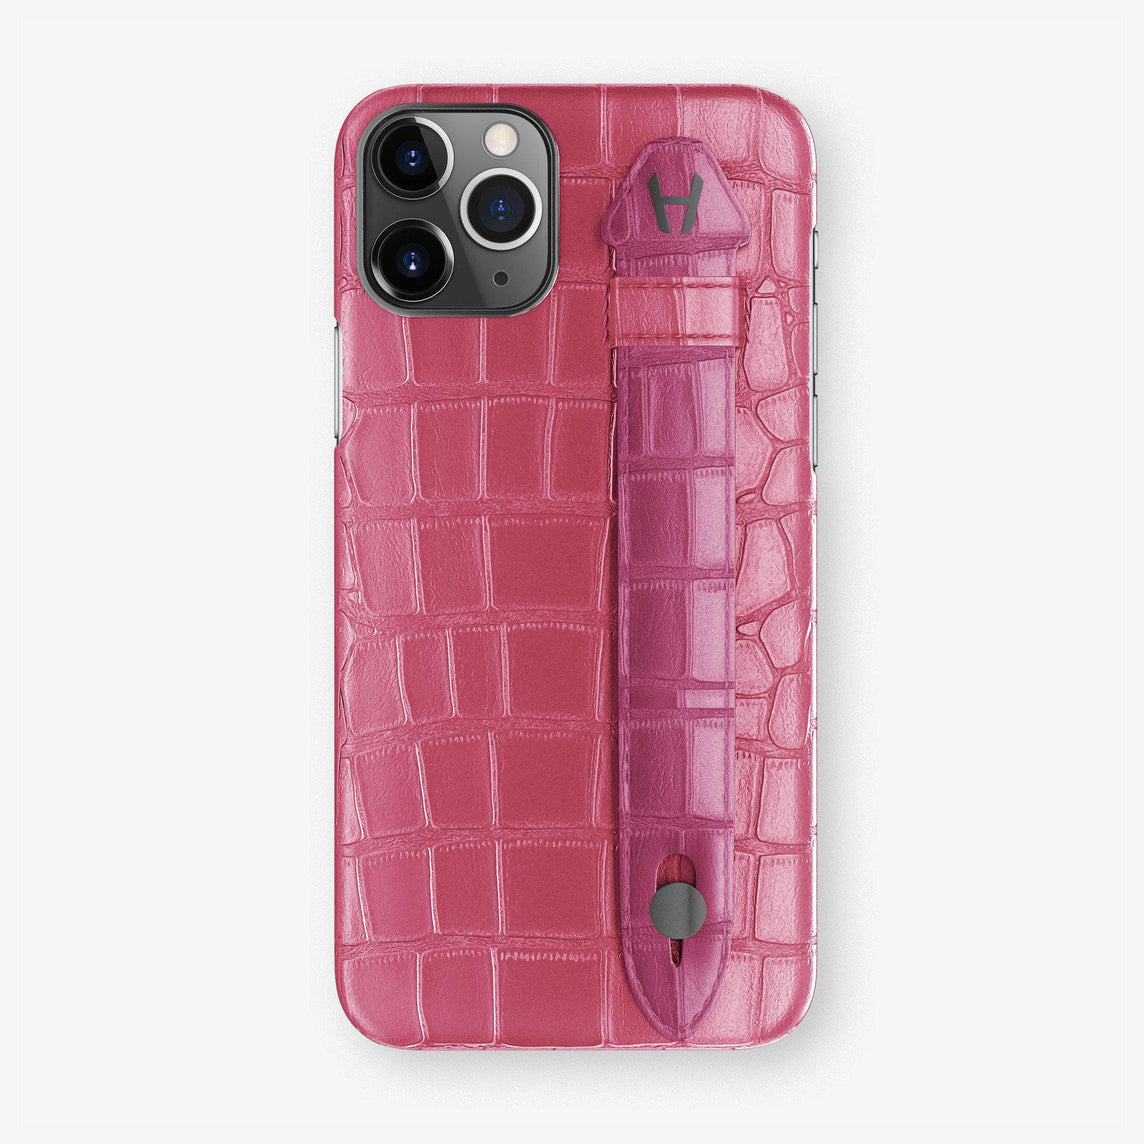 Alligator Finger Case iPhone 11 Pro | Pink Girly/Pink Fuchsia - Black